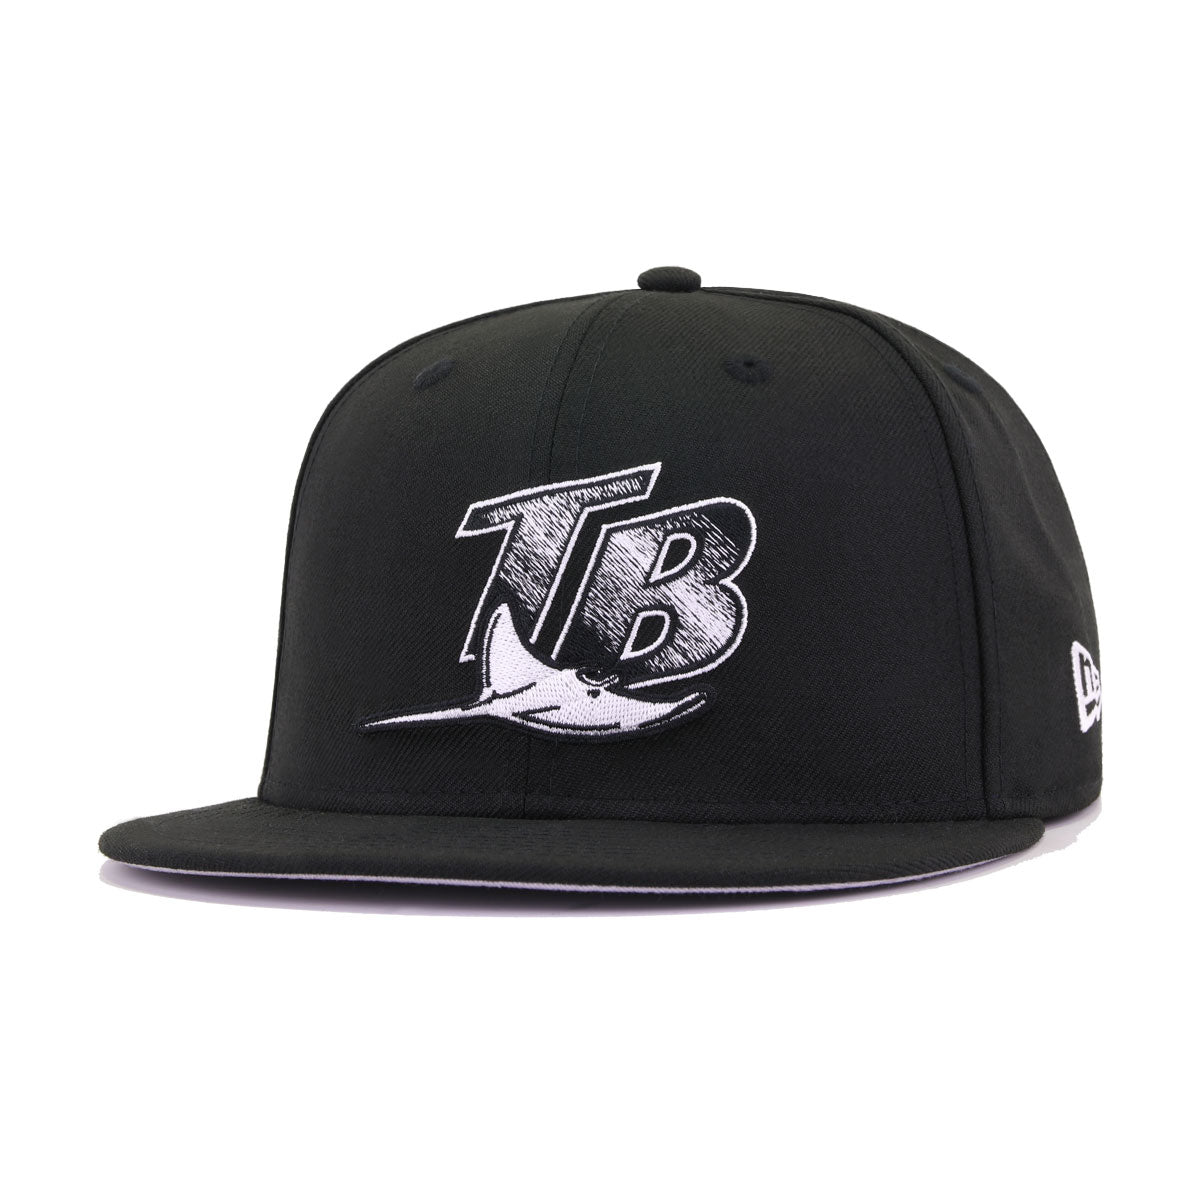 Tampa Bay Rays Black and White 10th Anniversary New Era 59Fifty Fitted